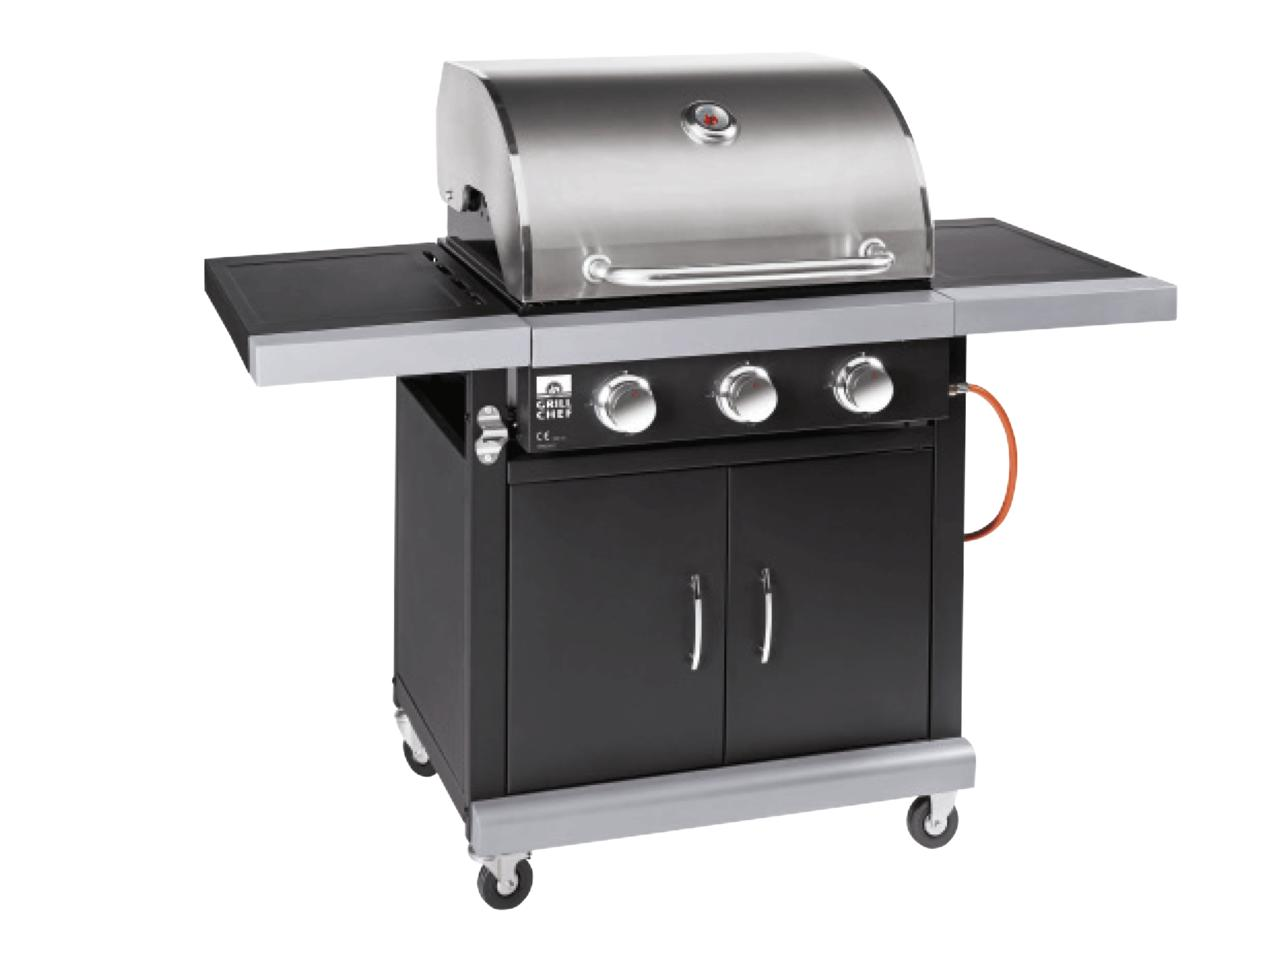 landmann by grillchef gas barbecue - lidl — ireland - specials archive